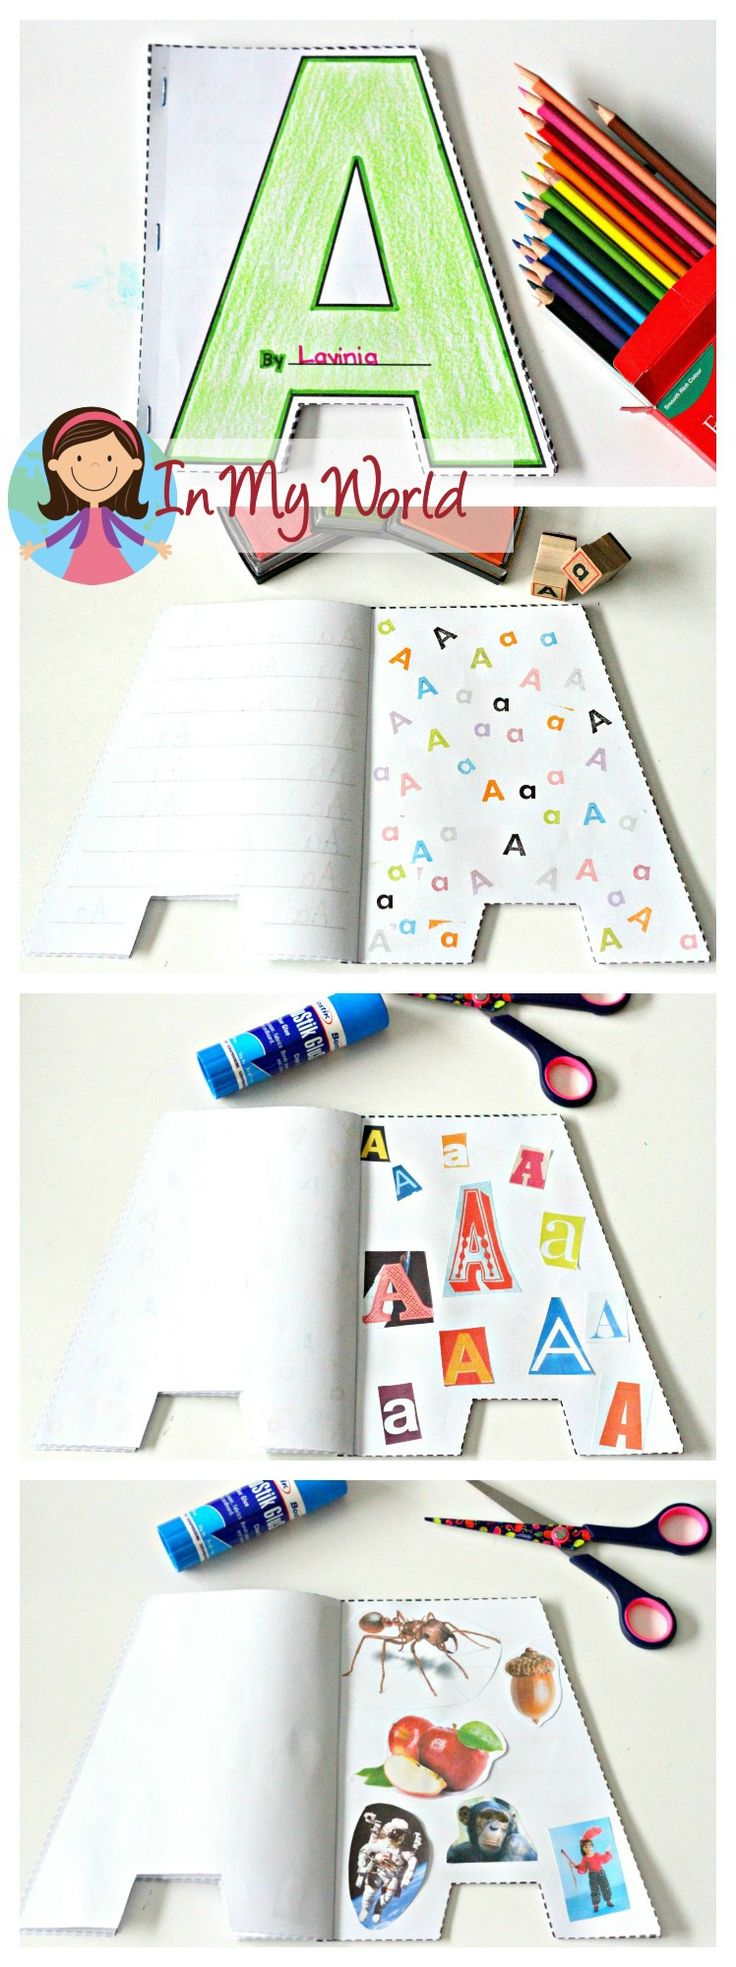 Alphabet Shape Booklets. Perfect for reinforcing letters to preschool and kindergarten students. (Letter stamping, magazine letter hunt, magazine beginning sounds picture hunt).